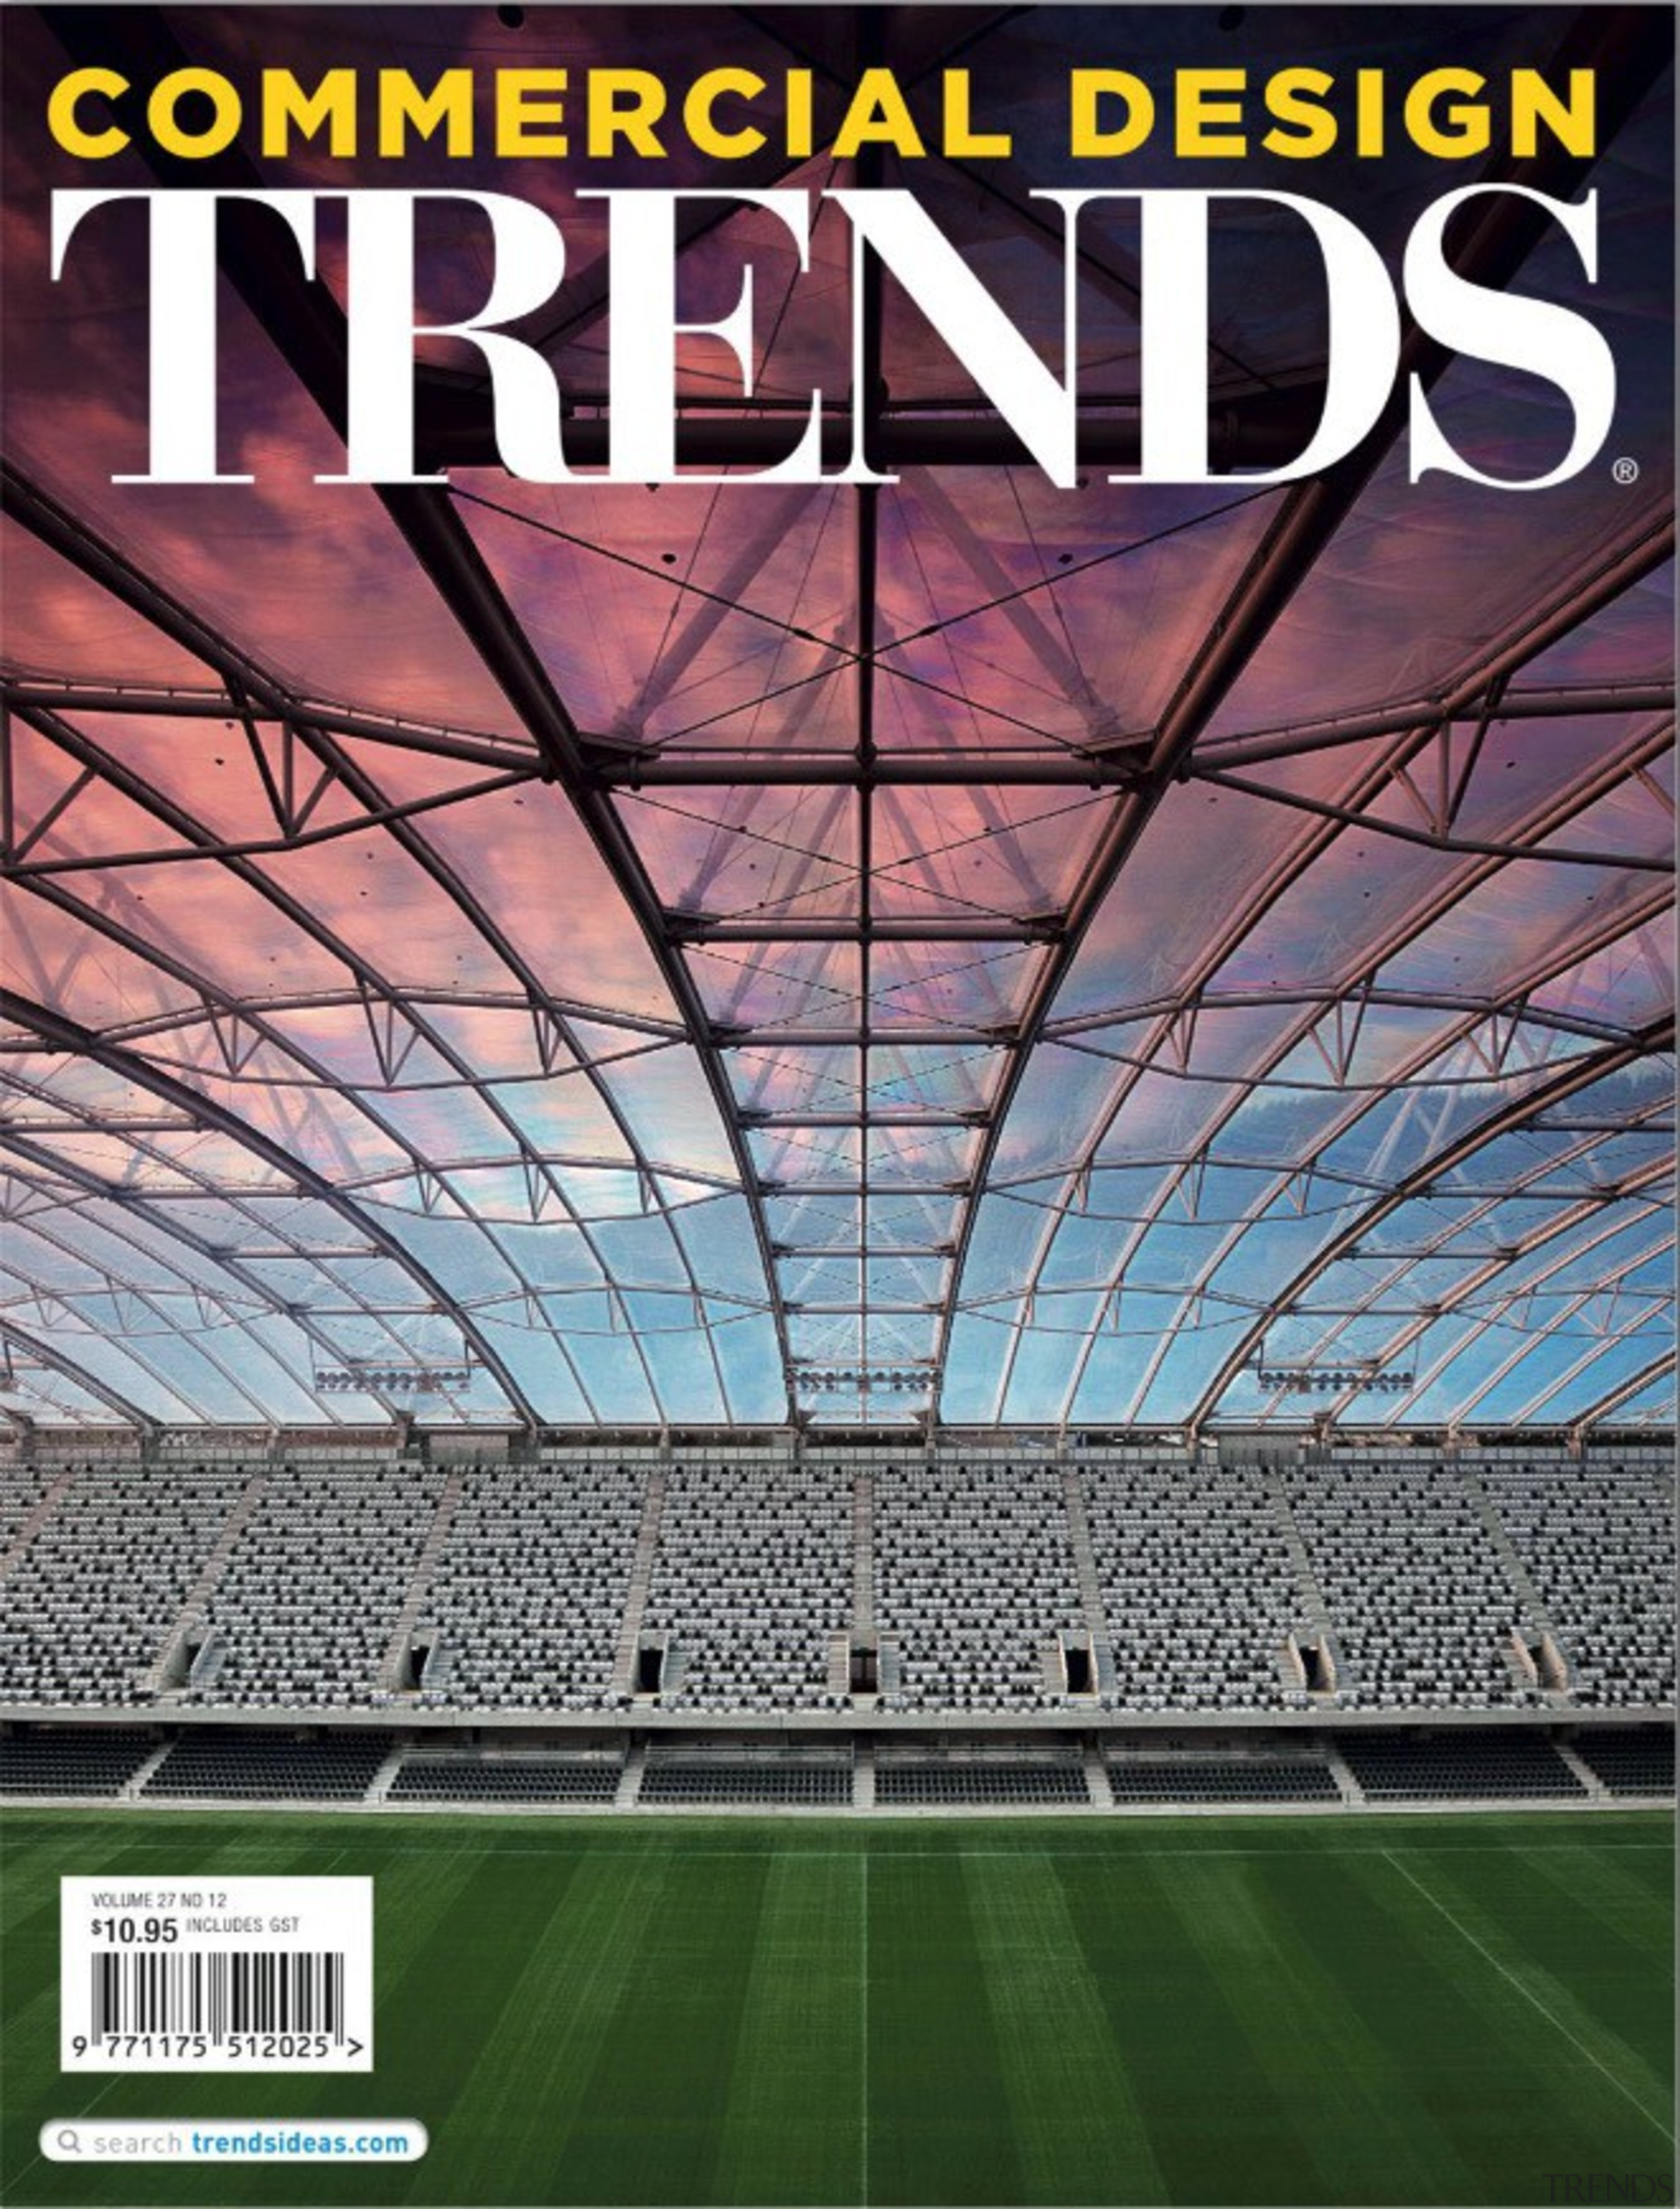 Book Cover Nz2712 - architecture | arena | architecture, arena, atmosphere, net, player, soccer specific stadium, sport venue, stadium, structure